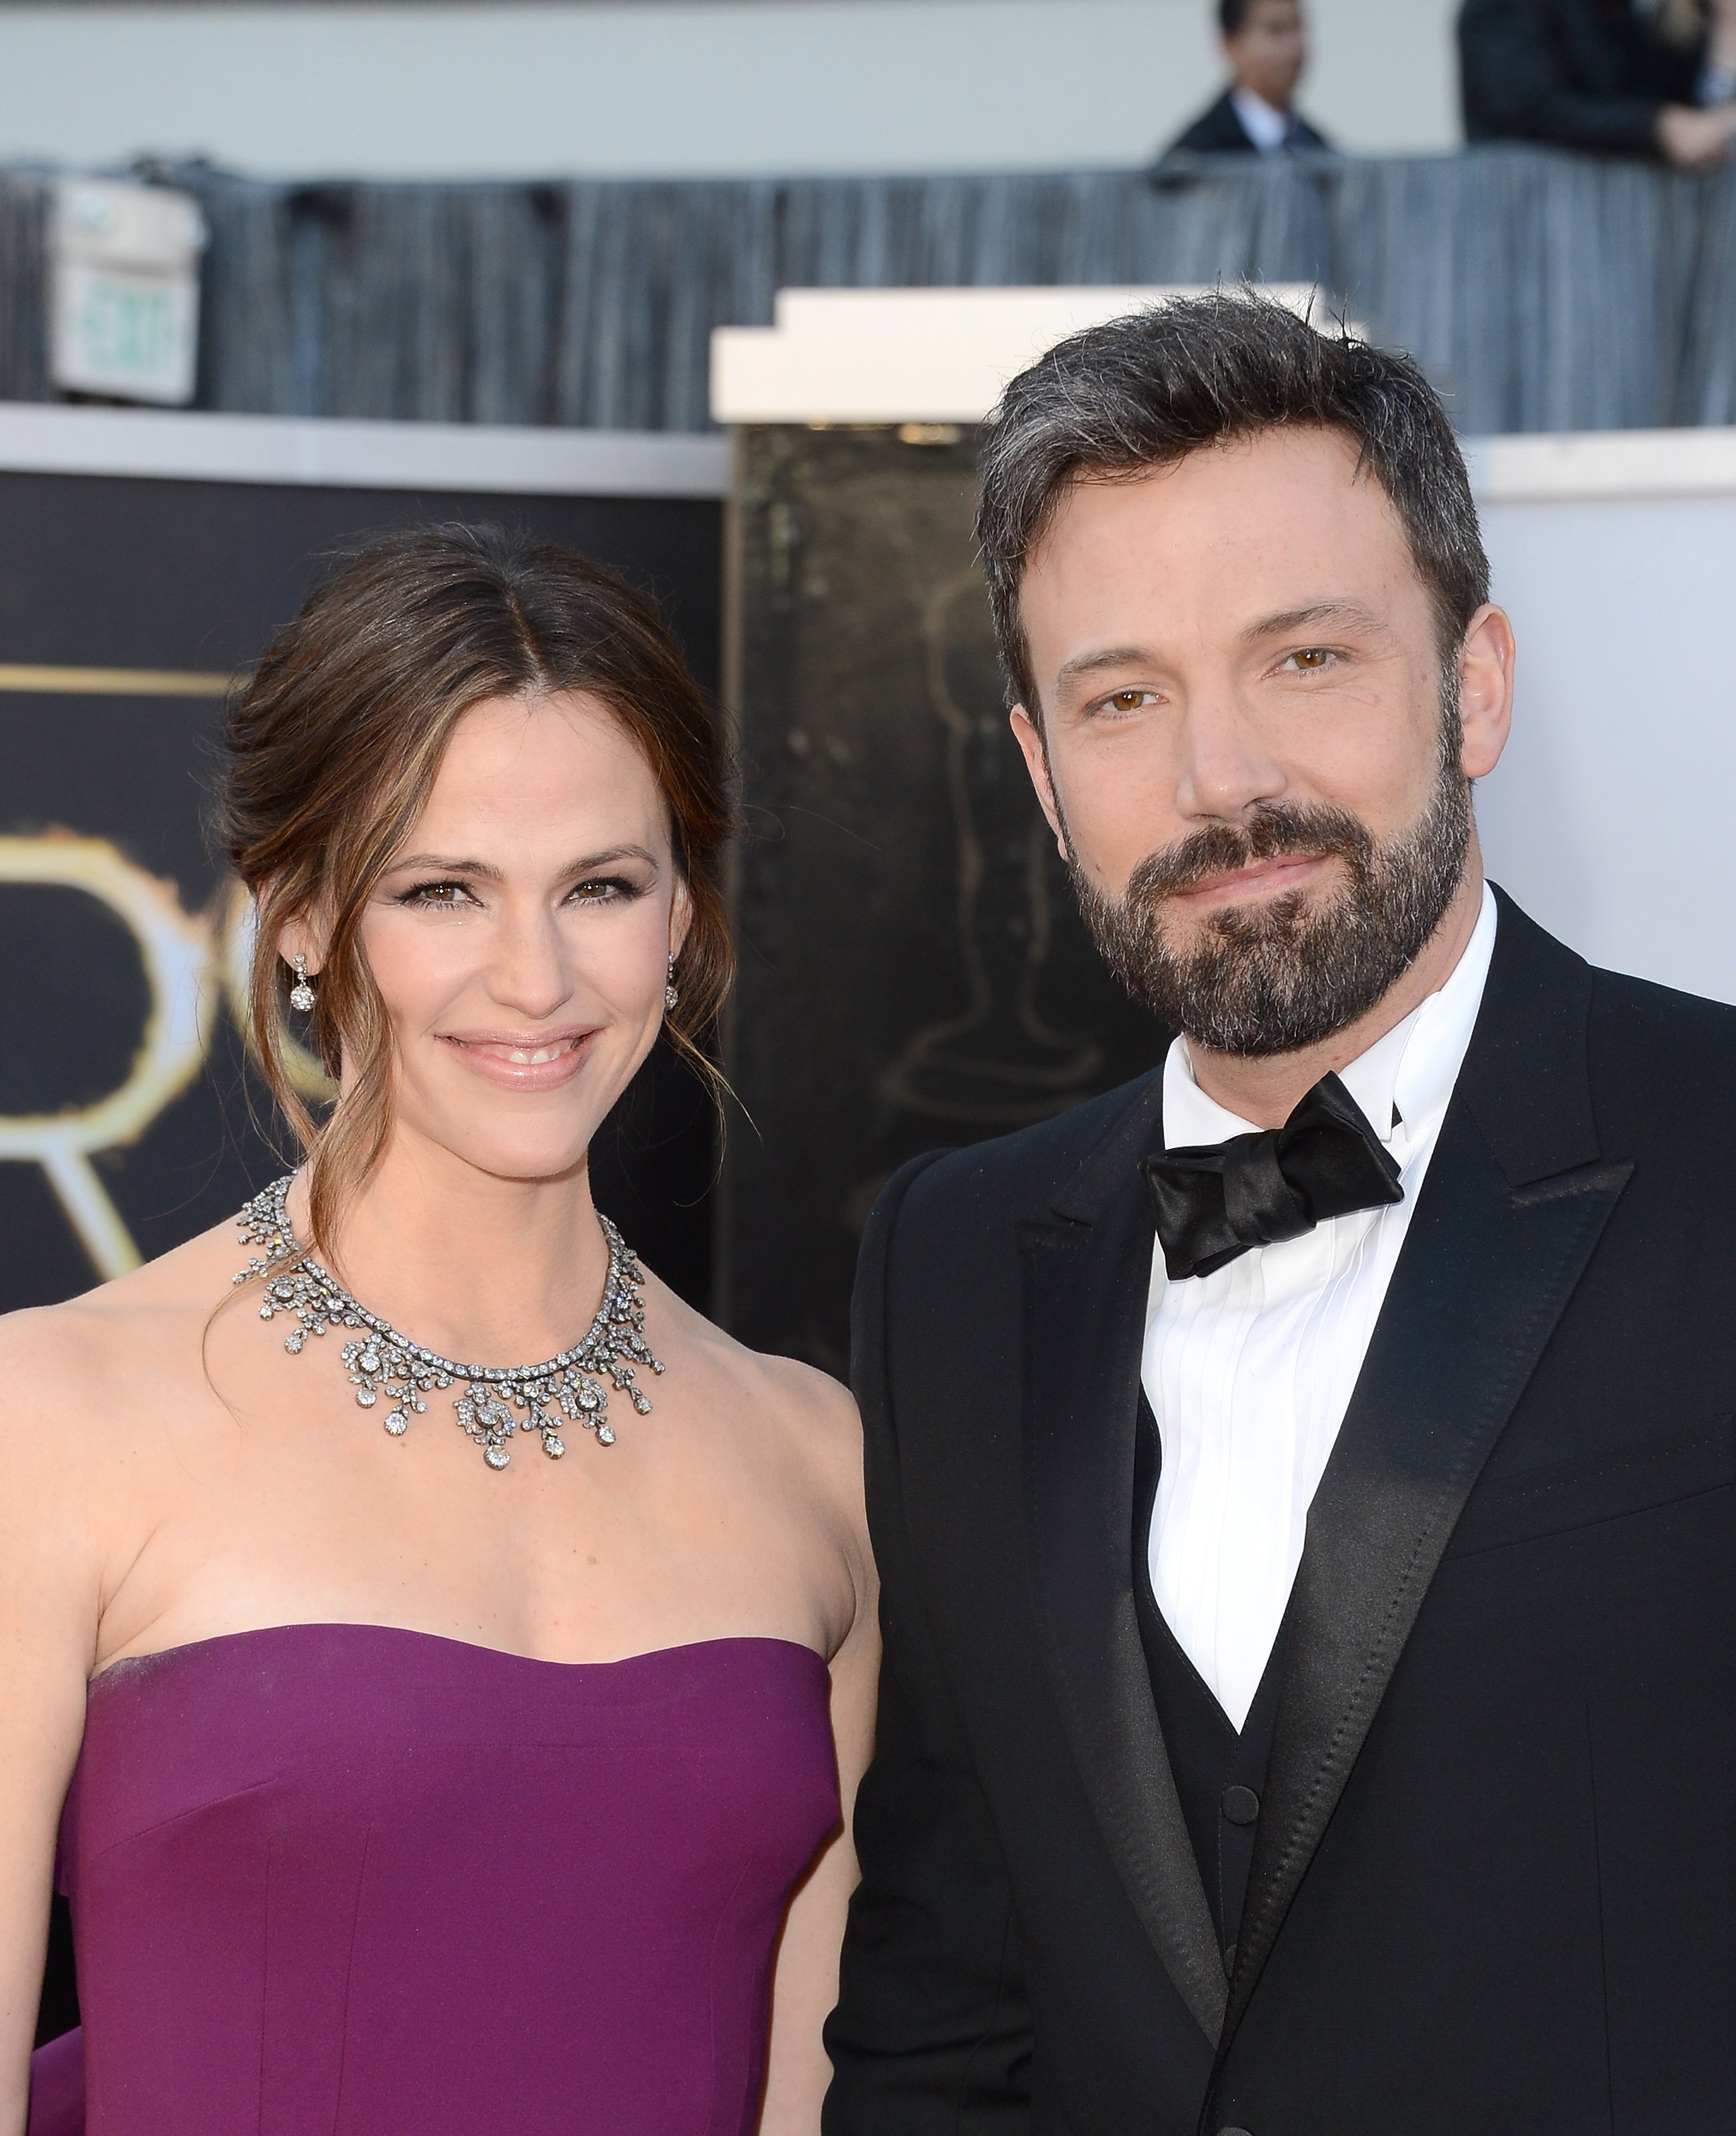 Jennifer Garner and Ben Affleck arrive at the Oscars on February 24, 2013, in Hollywood, California. | Source: Getty Images.